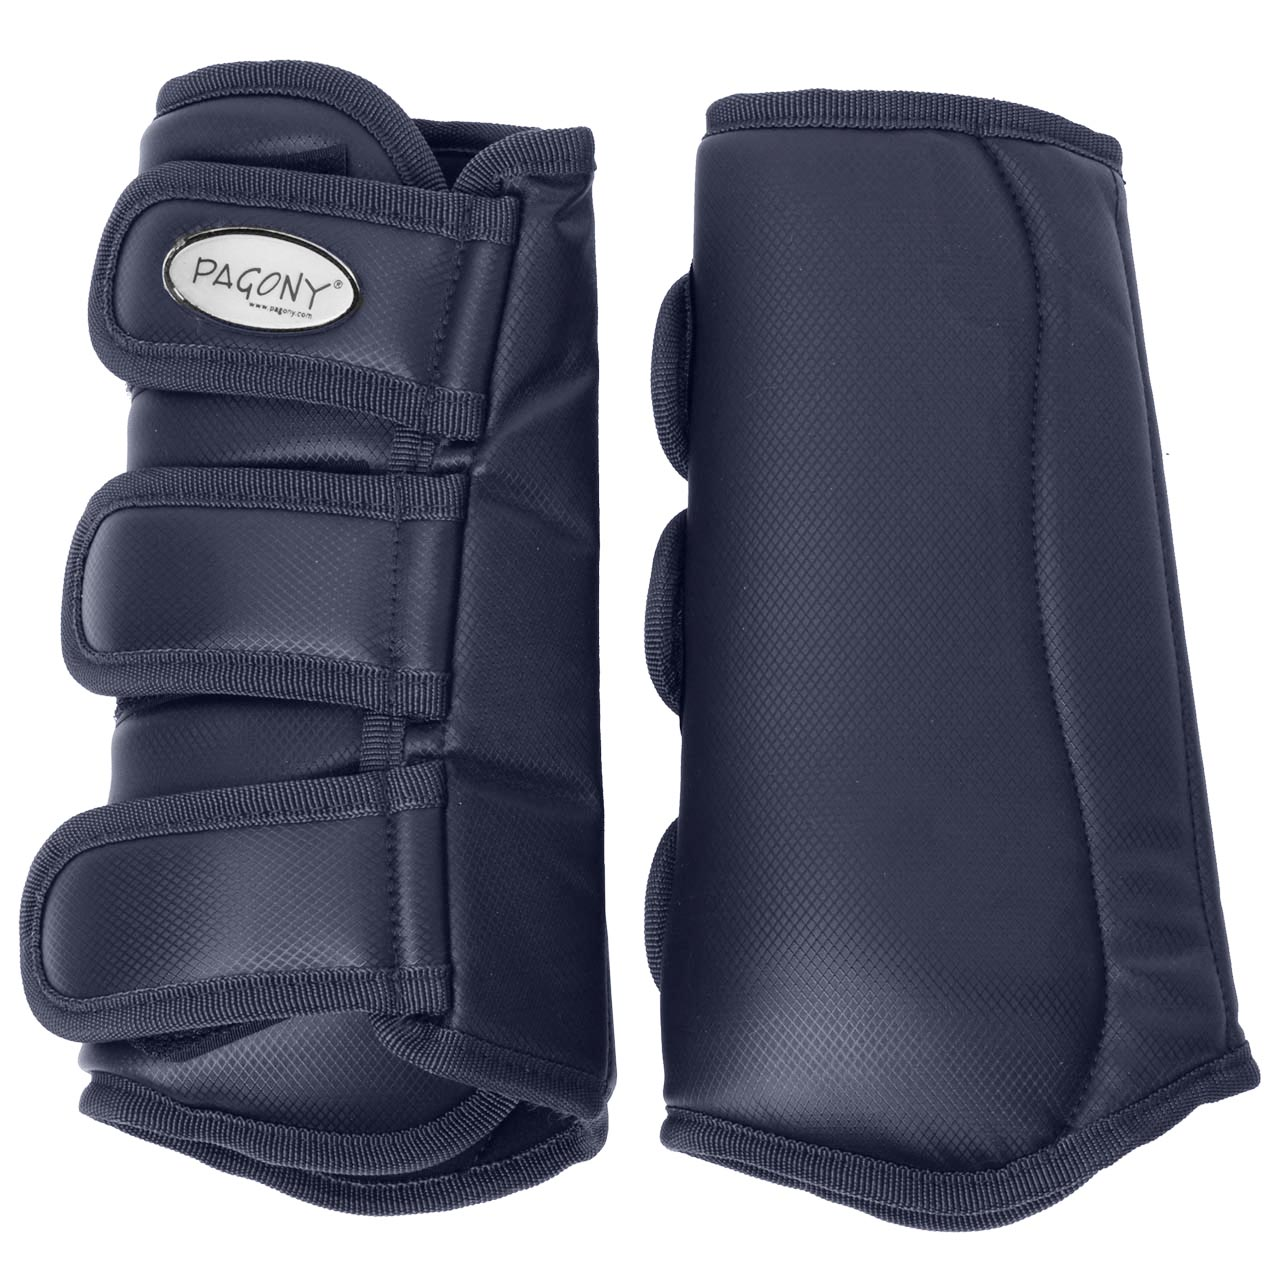 Pagony Dressage Boots achter donkerblauw maat:cob